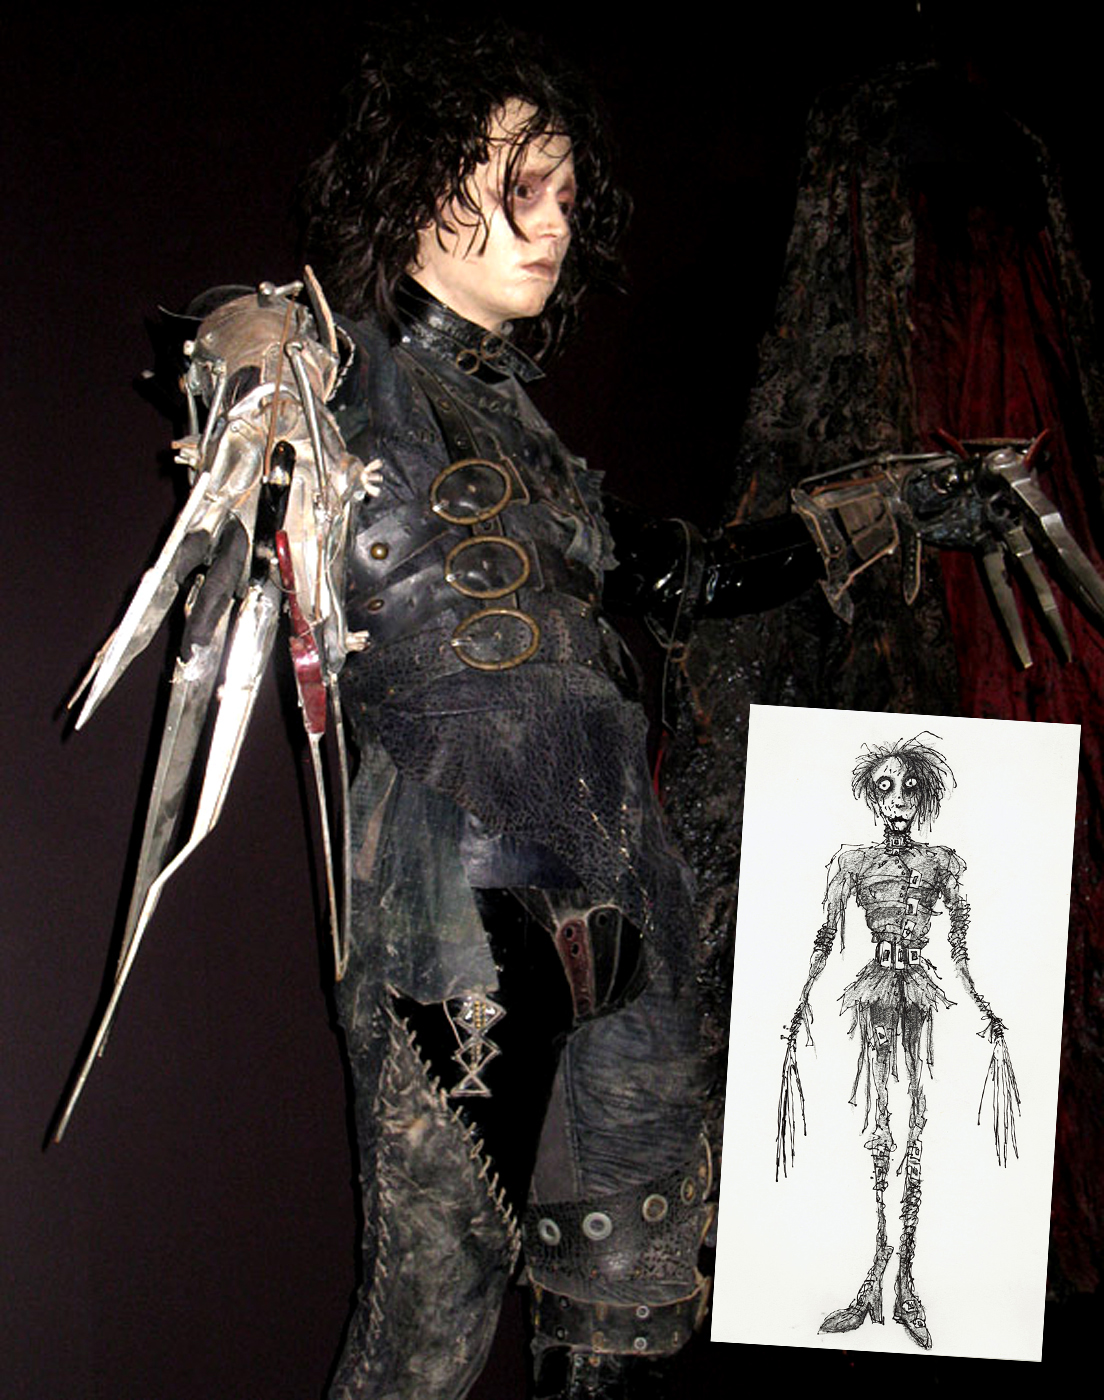 edward scissorhands film essay An essay by ann devine edward scissorhands directed by tim burton is a  variation of the classic horror theme exemplified by the story of frankenstein,  where a  even before viewing the film, one is aware that it is not a conventional  horror.